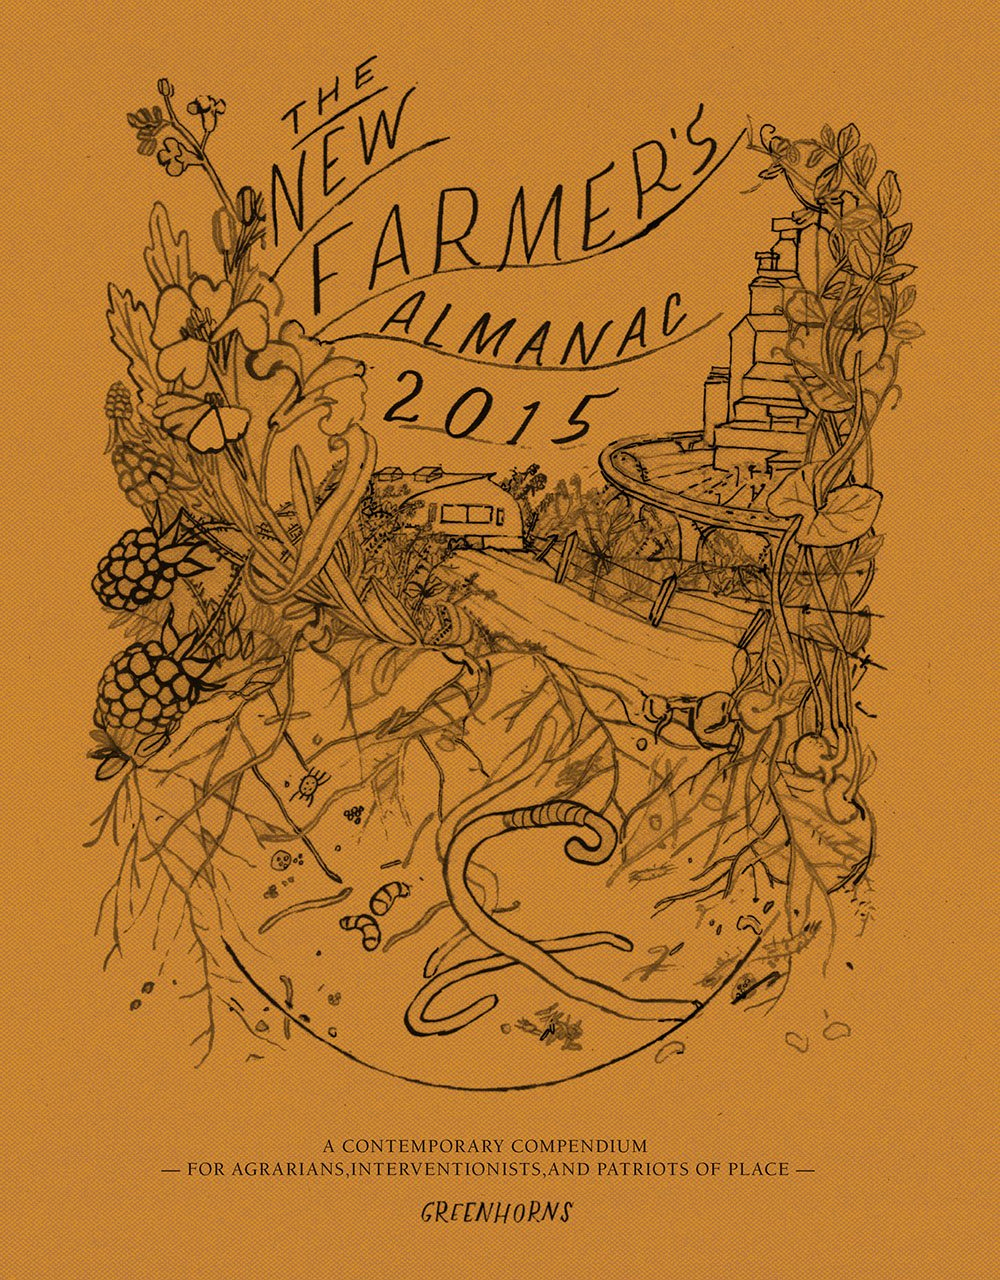 The New Farmer's Almanac 2015: A Contemporary Compendium for Agrarians, Interventionists, and Patriots of Place